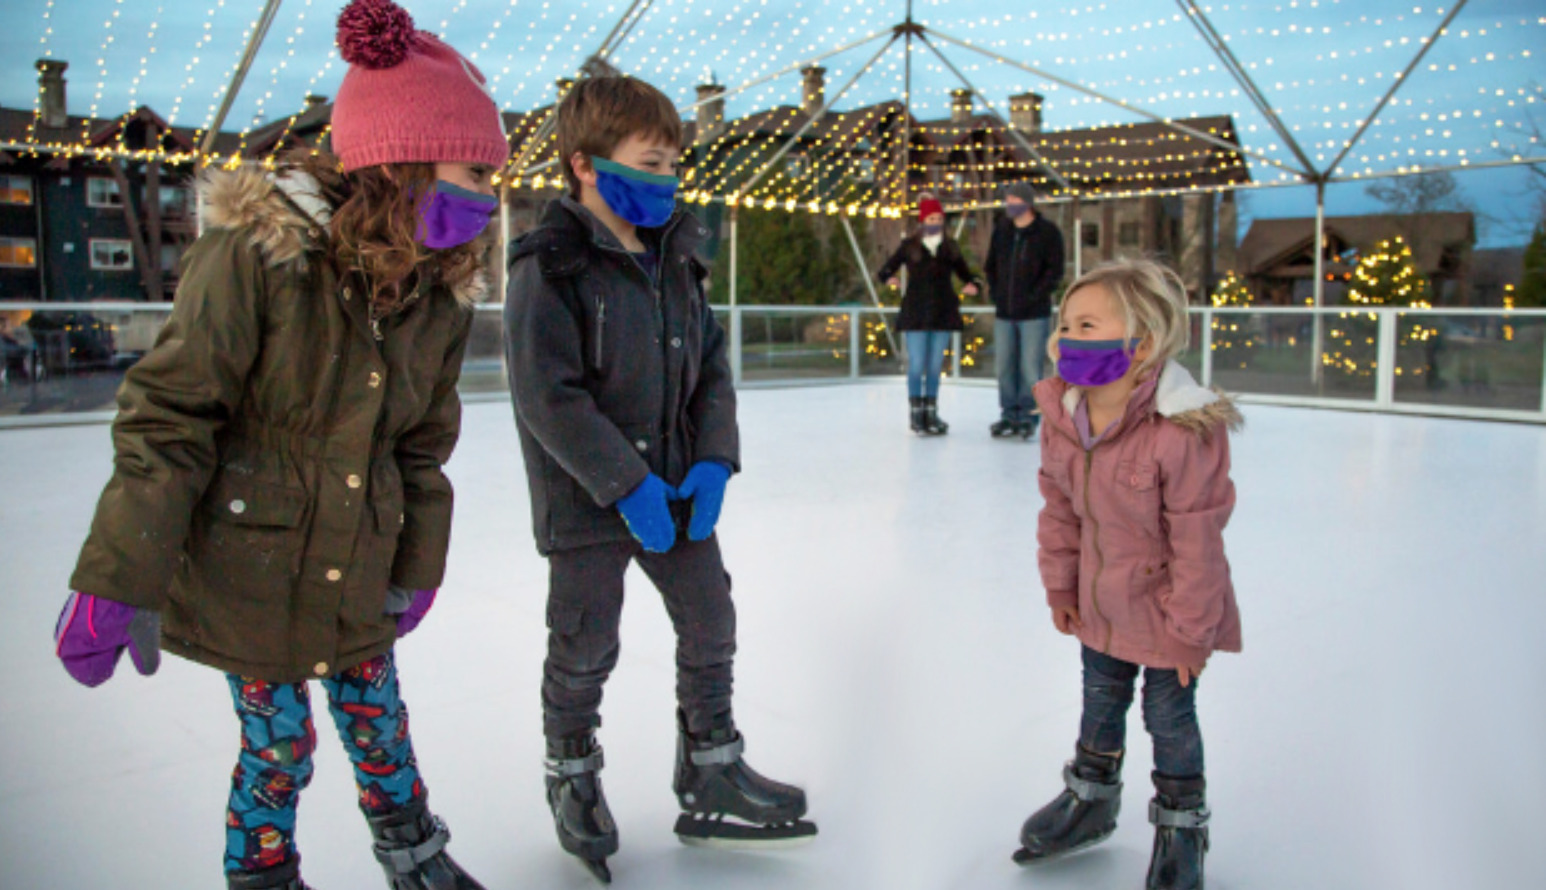 Activities to Enjoy with Your Kids Family this Winter